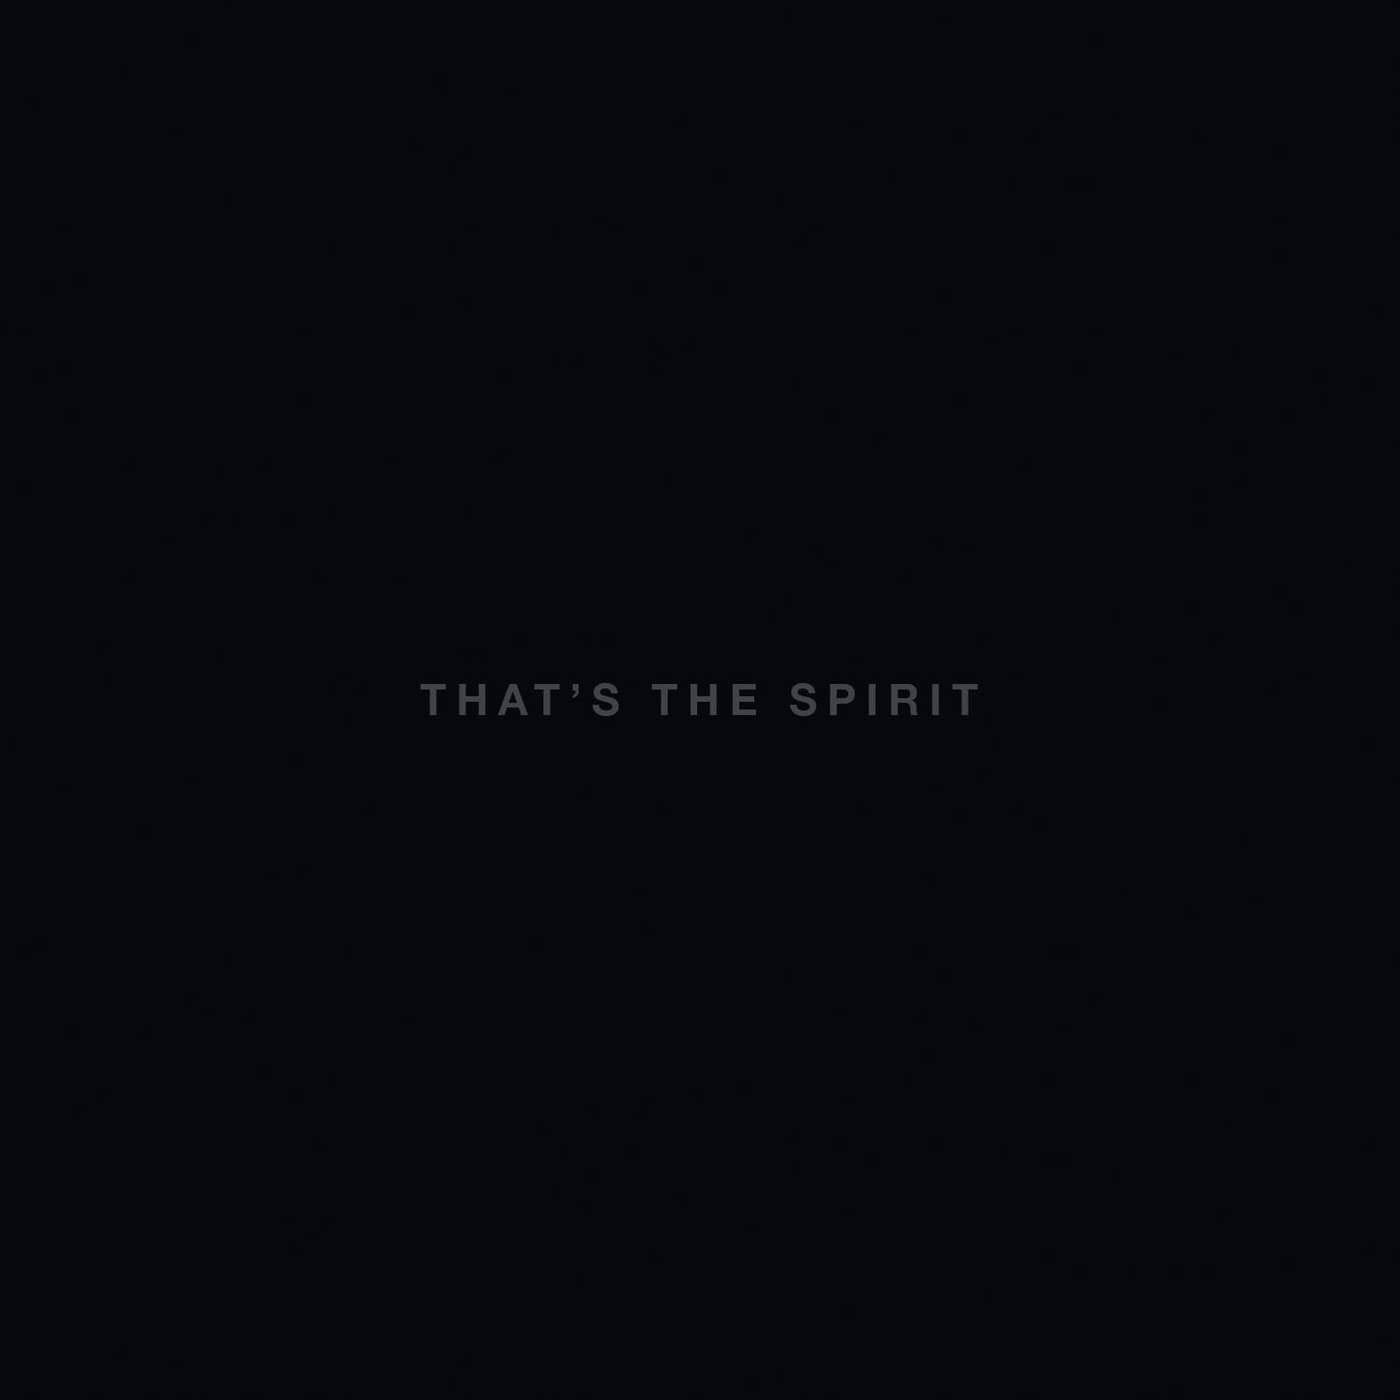 A Cliché-by-Cliché Guide to BMTH's 'That's The Spirit'